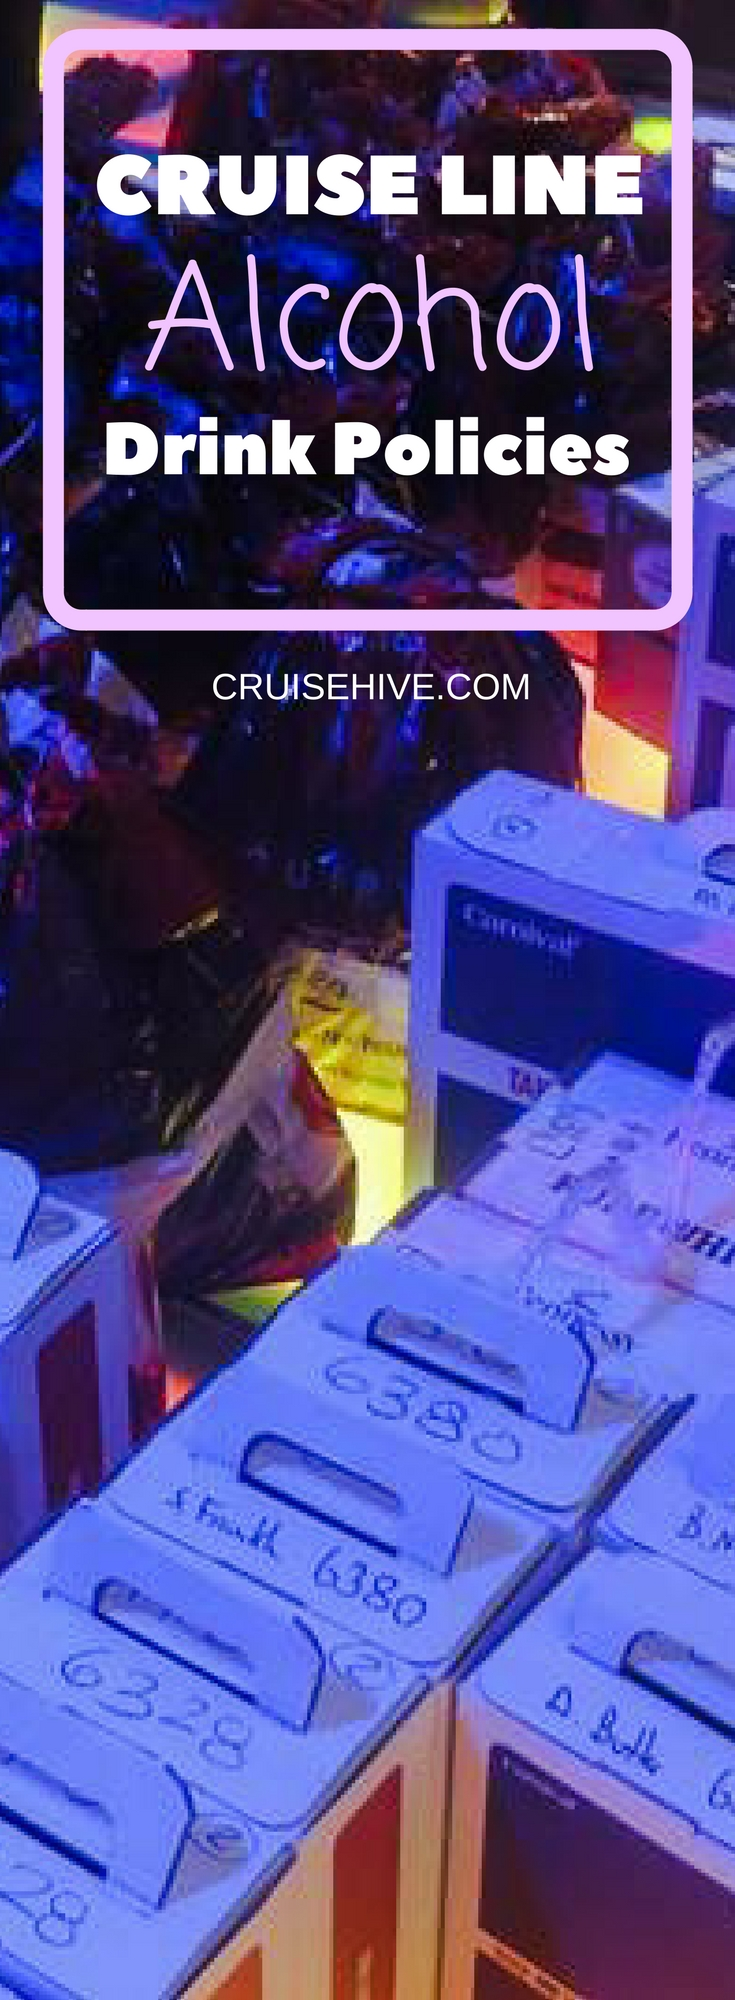 Cruise Line Alcohol Policy